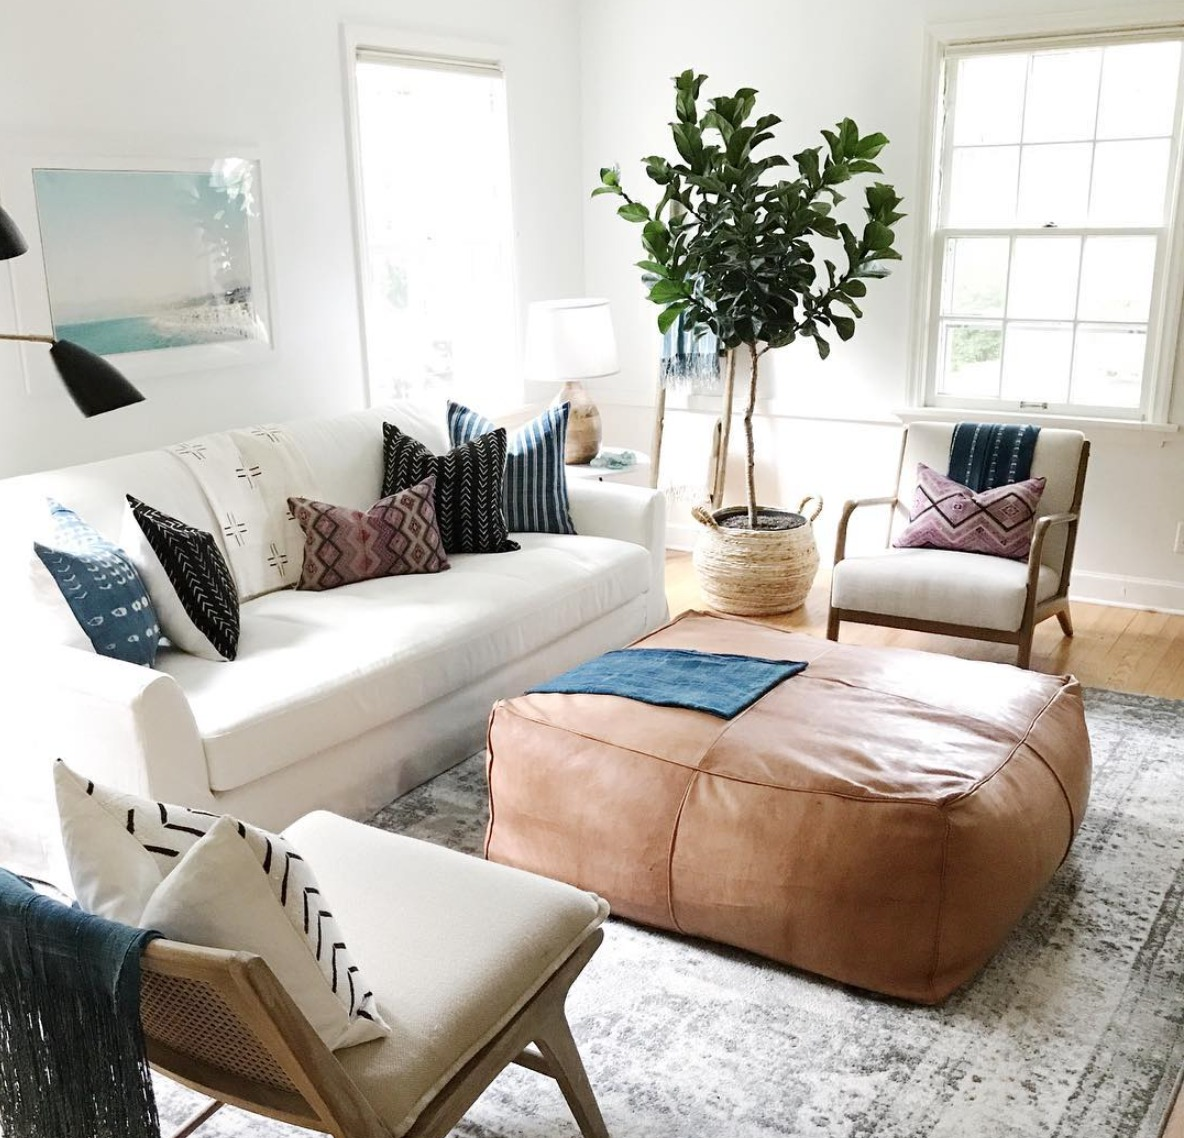 Pillow Trends with Pictures- Mud Cloth Pillows